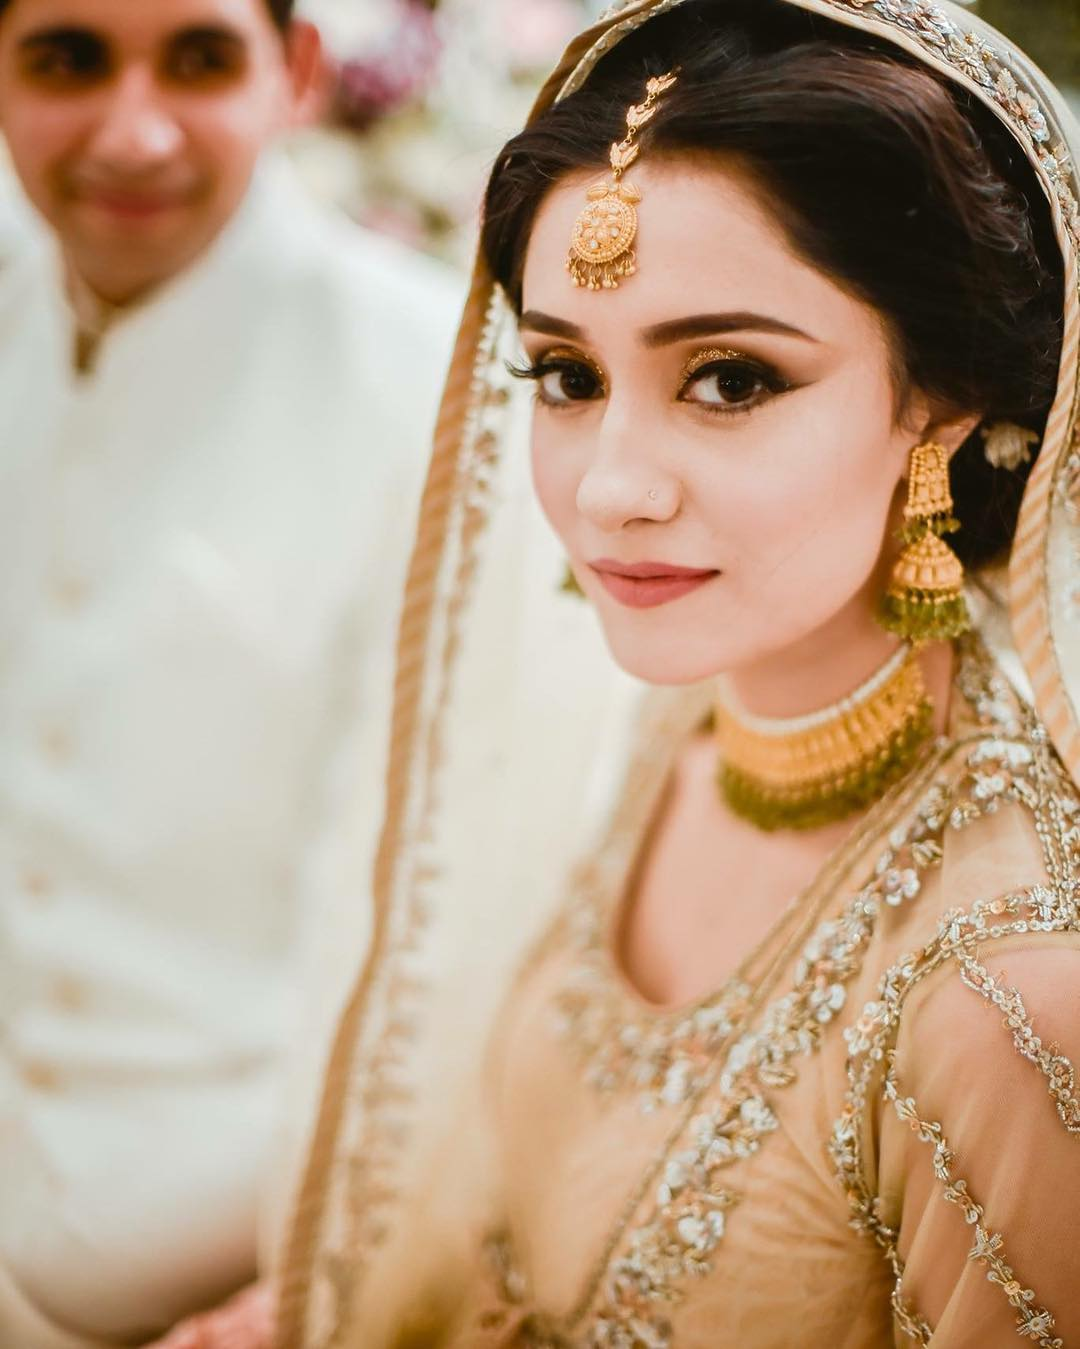 How To Fake Full Brows On Your Wedding